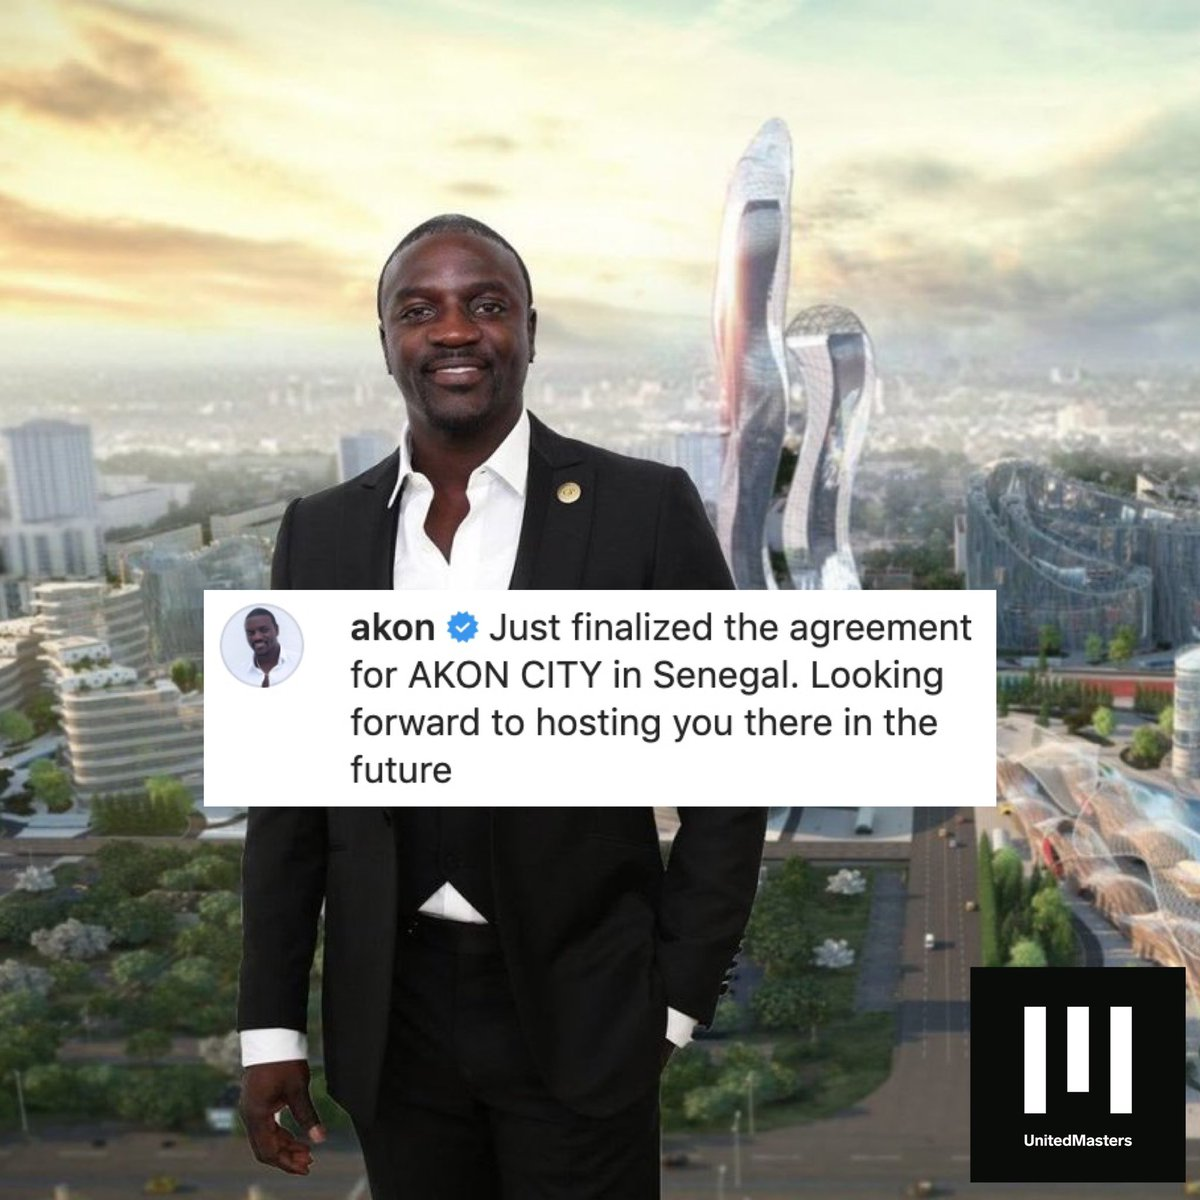 Akon has his own city now 🔥